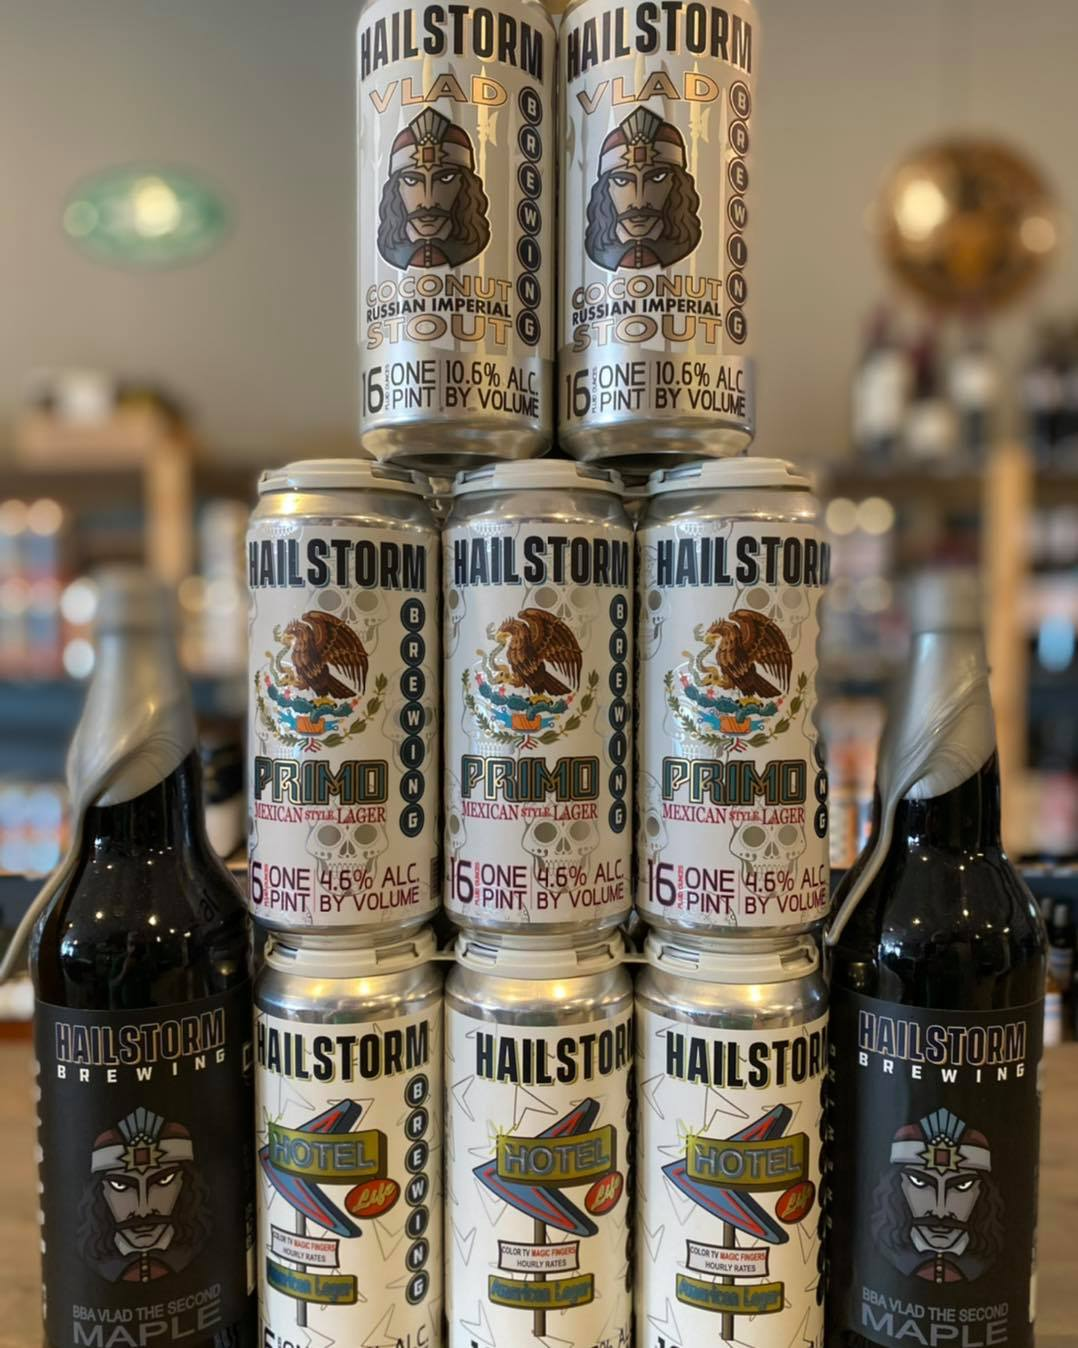 Beers from Hailstorm Brewing